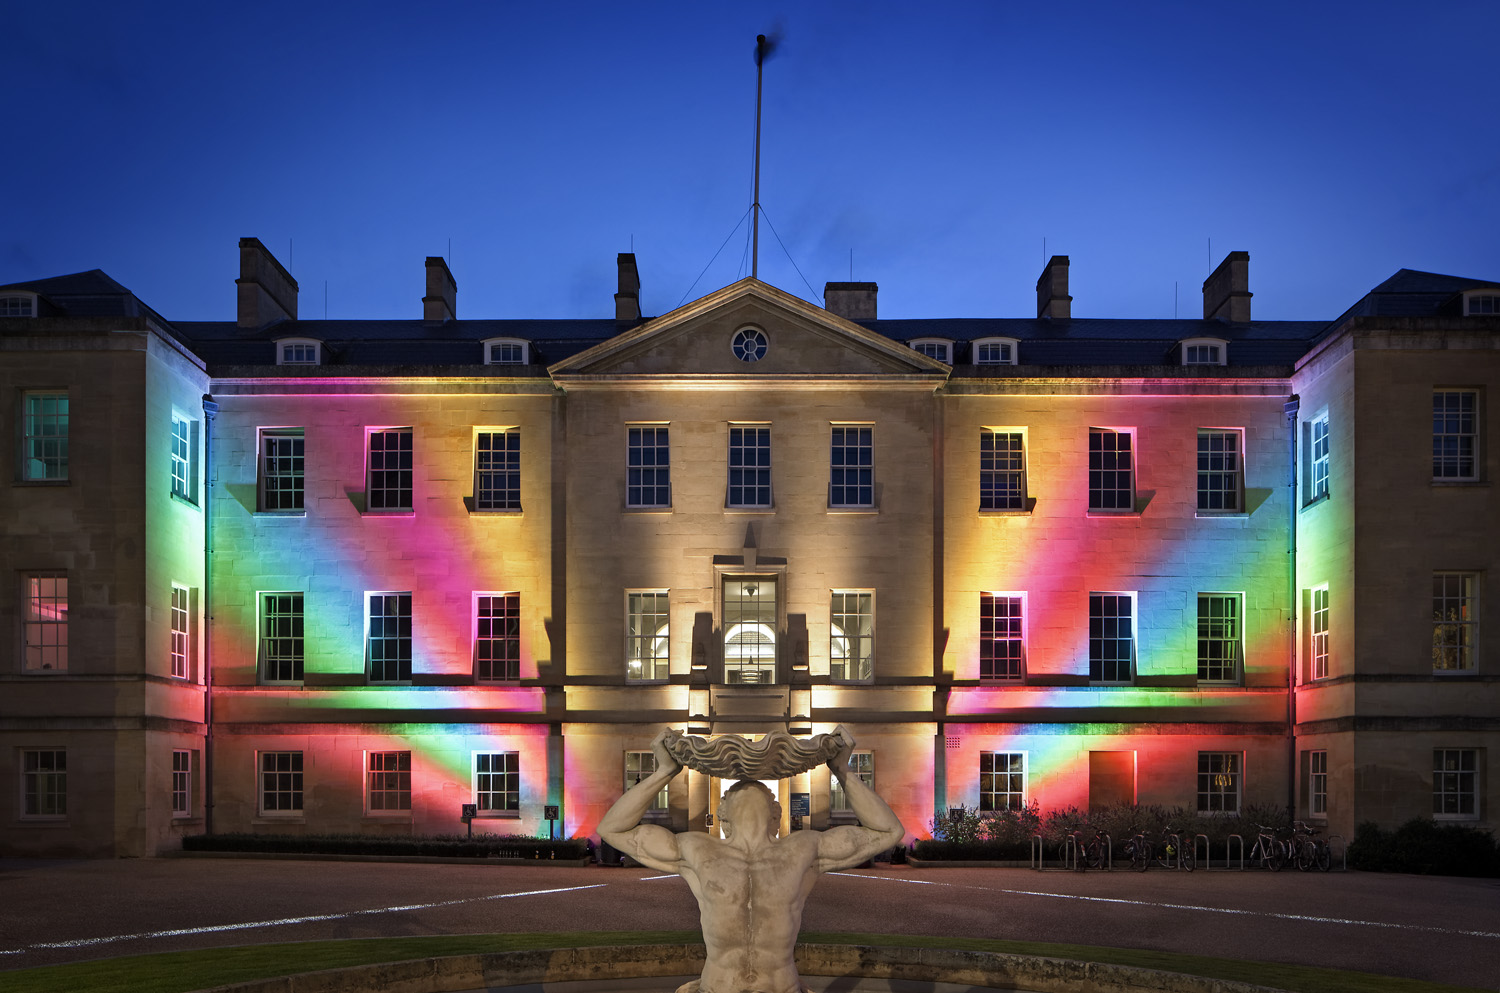 The Radcliffe Humanities building in Oxford lit up for the 2017 Night of Heritage Light.